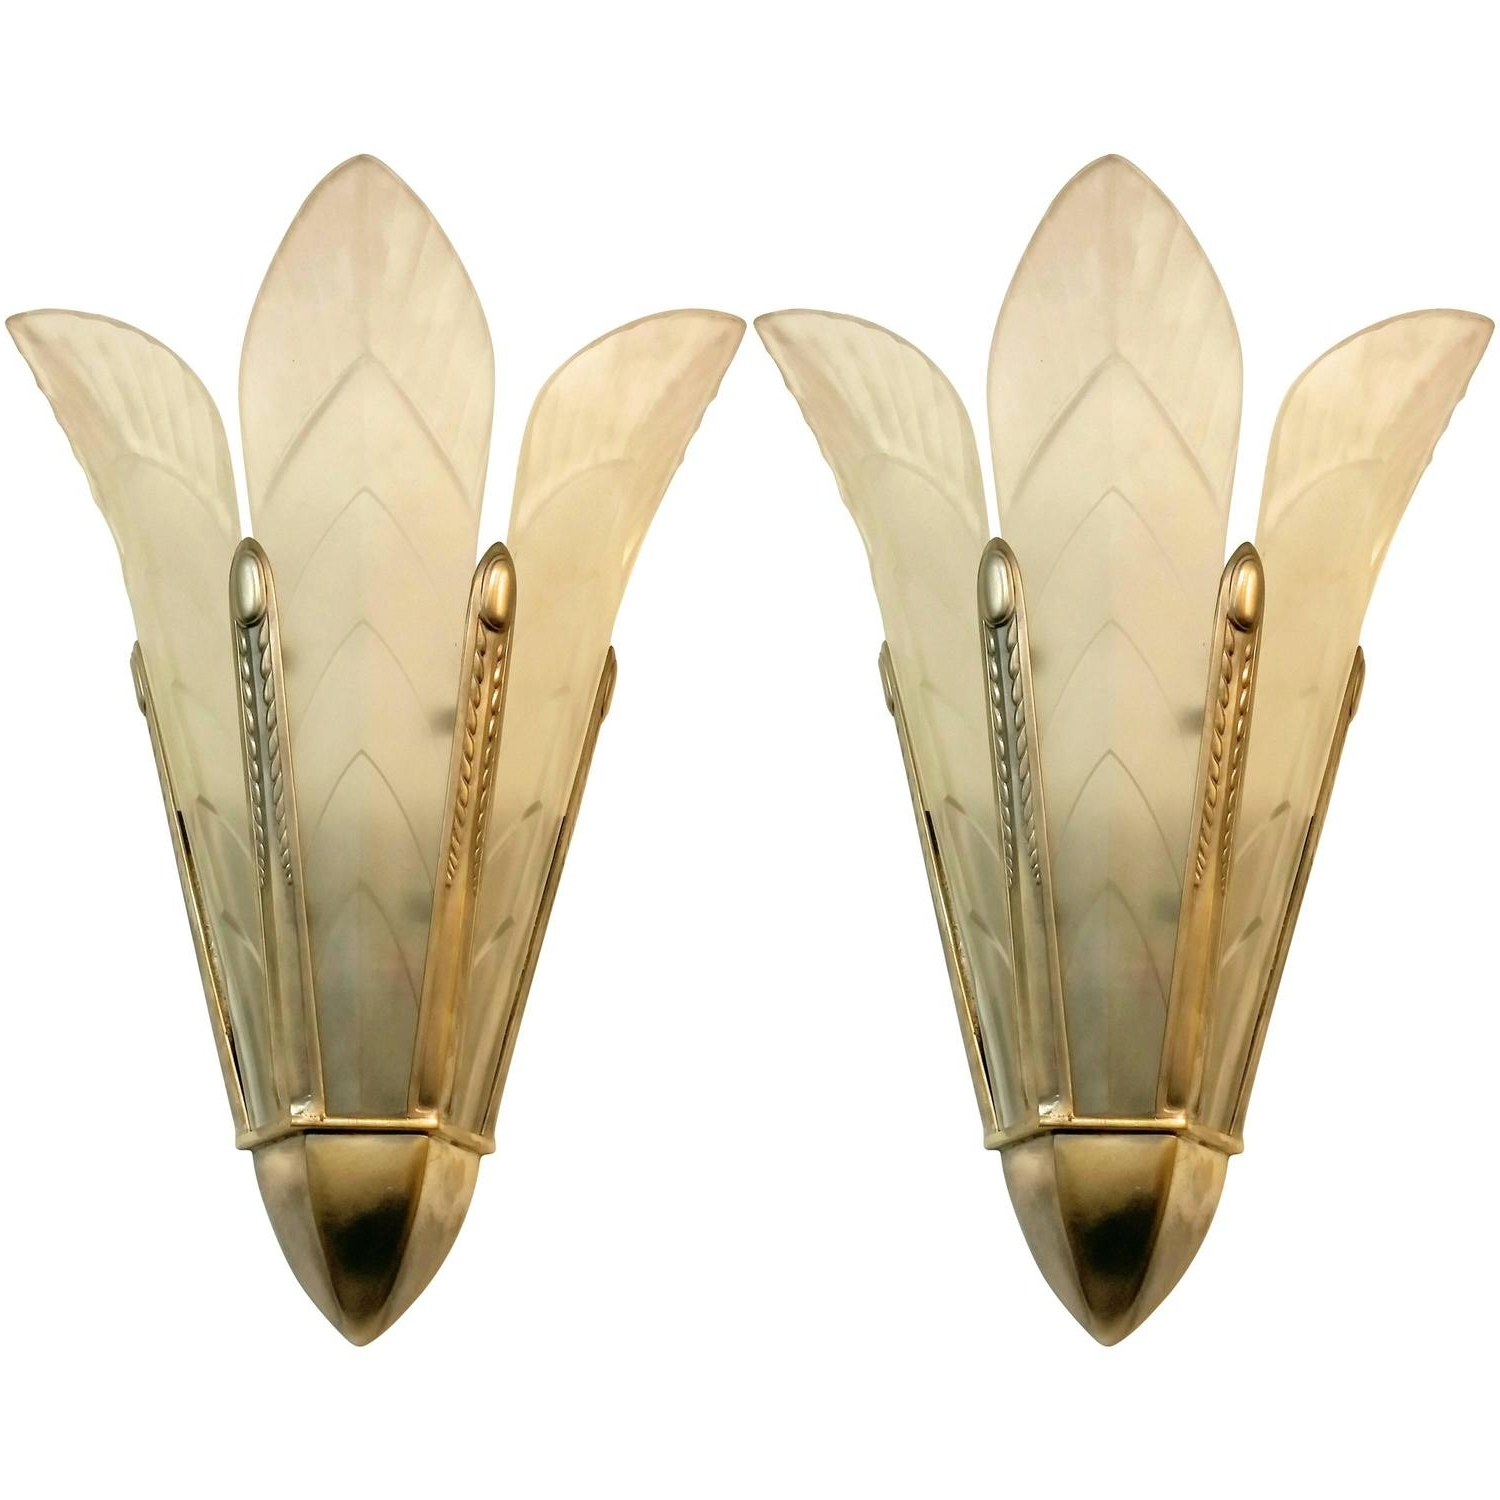 Well Known French Art Deco Wall Sconcessabino For Sale At 1Stdibs Throughout Art Deco Wall Sconces (View 16 of 20)